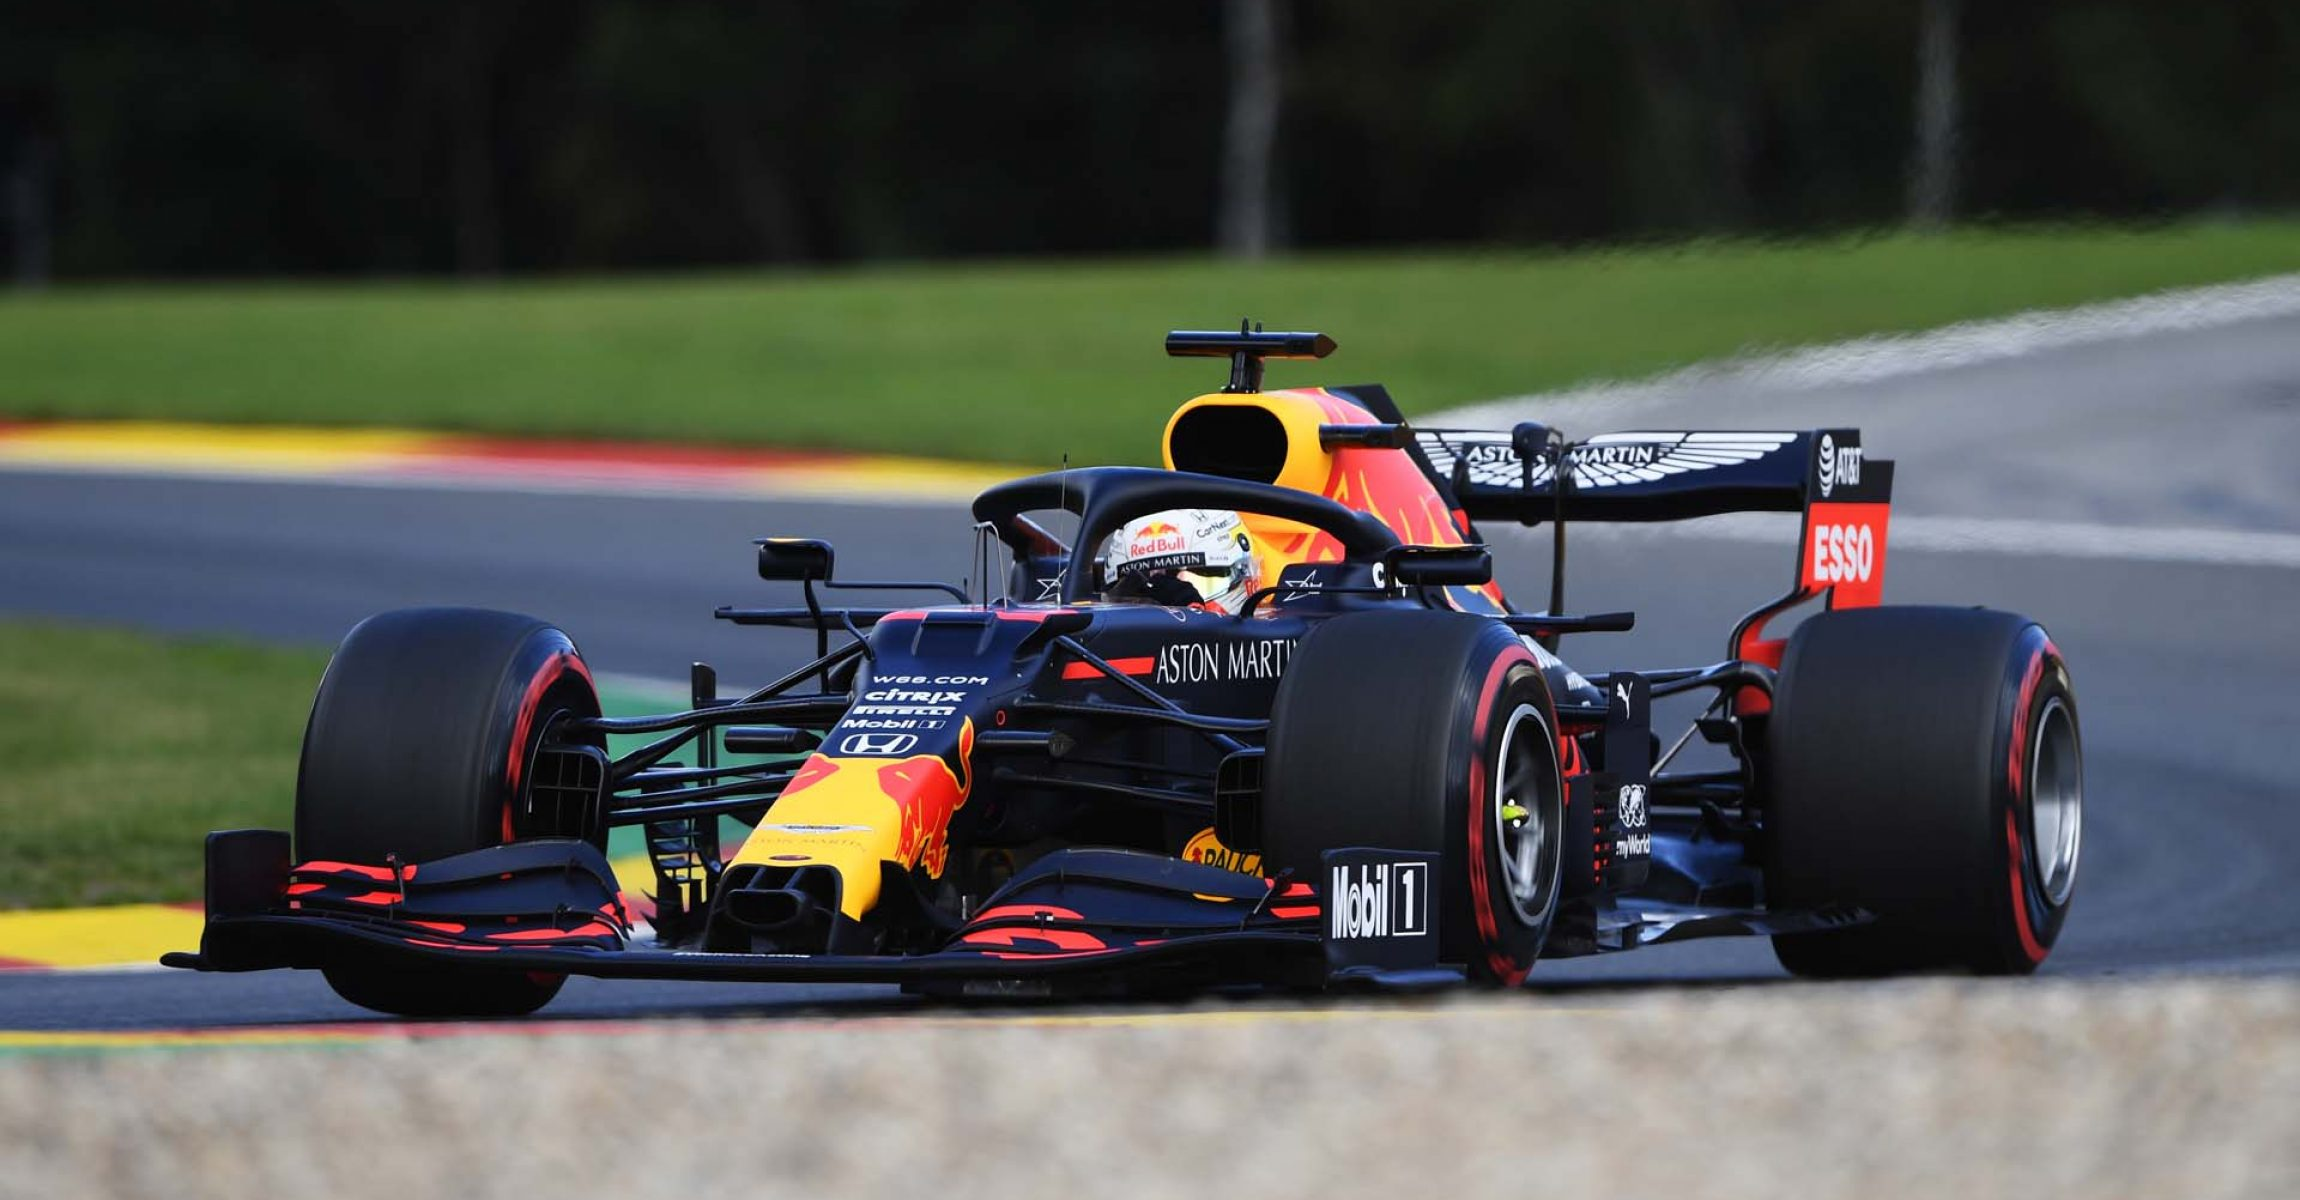 SPA, BELGIUM - AUGUST 29: Max Verstappen of the Netherlands driving the (33) Aston Martin Red Bull Racing RB16 drives during final practice for the F1 Grand Prix of Belgium at Circuit de Spa-Francorchamps on August 29, 2020 in Spa, Belgium. (Photo by Rudy Carezzevoli/Getty Images)